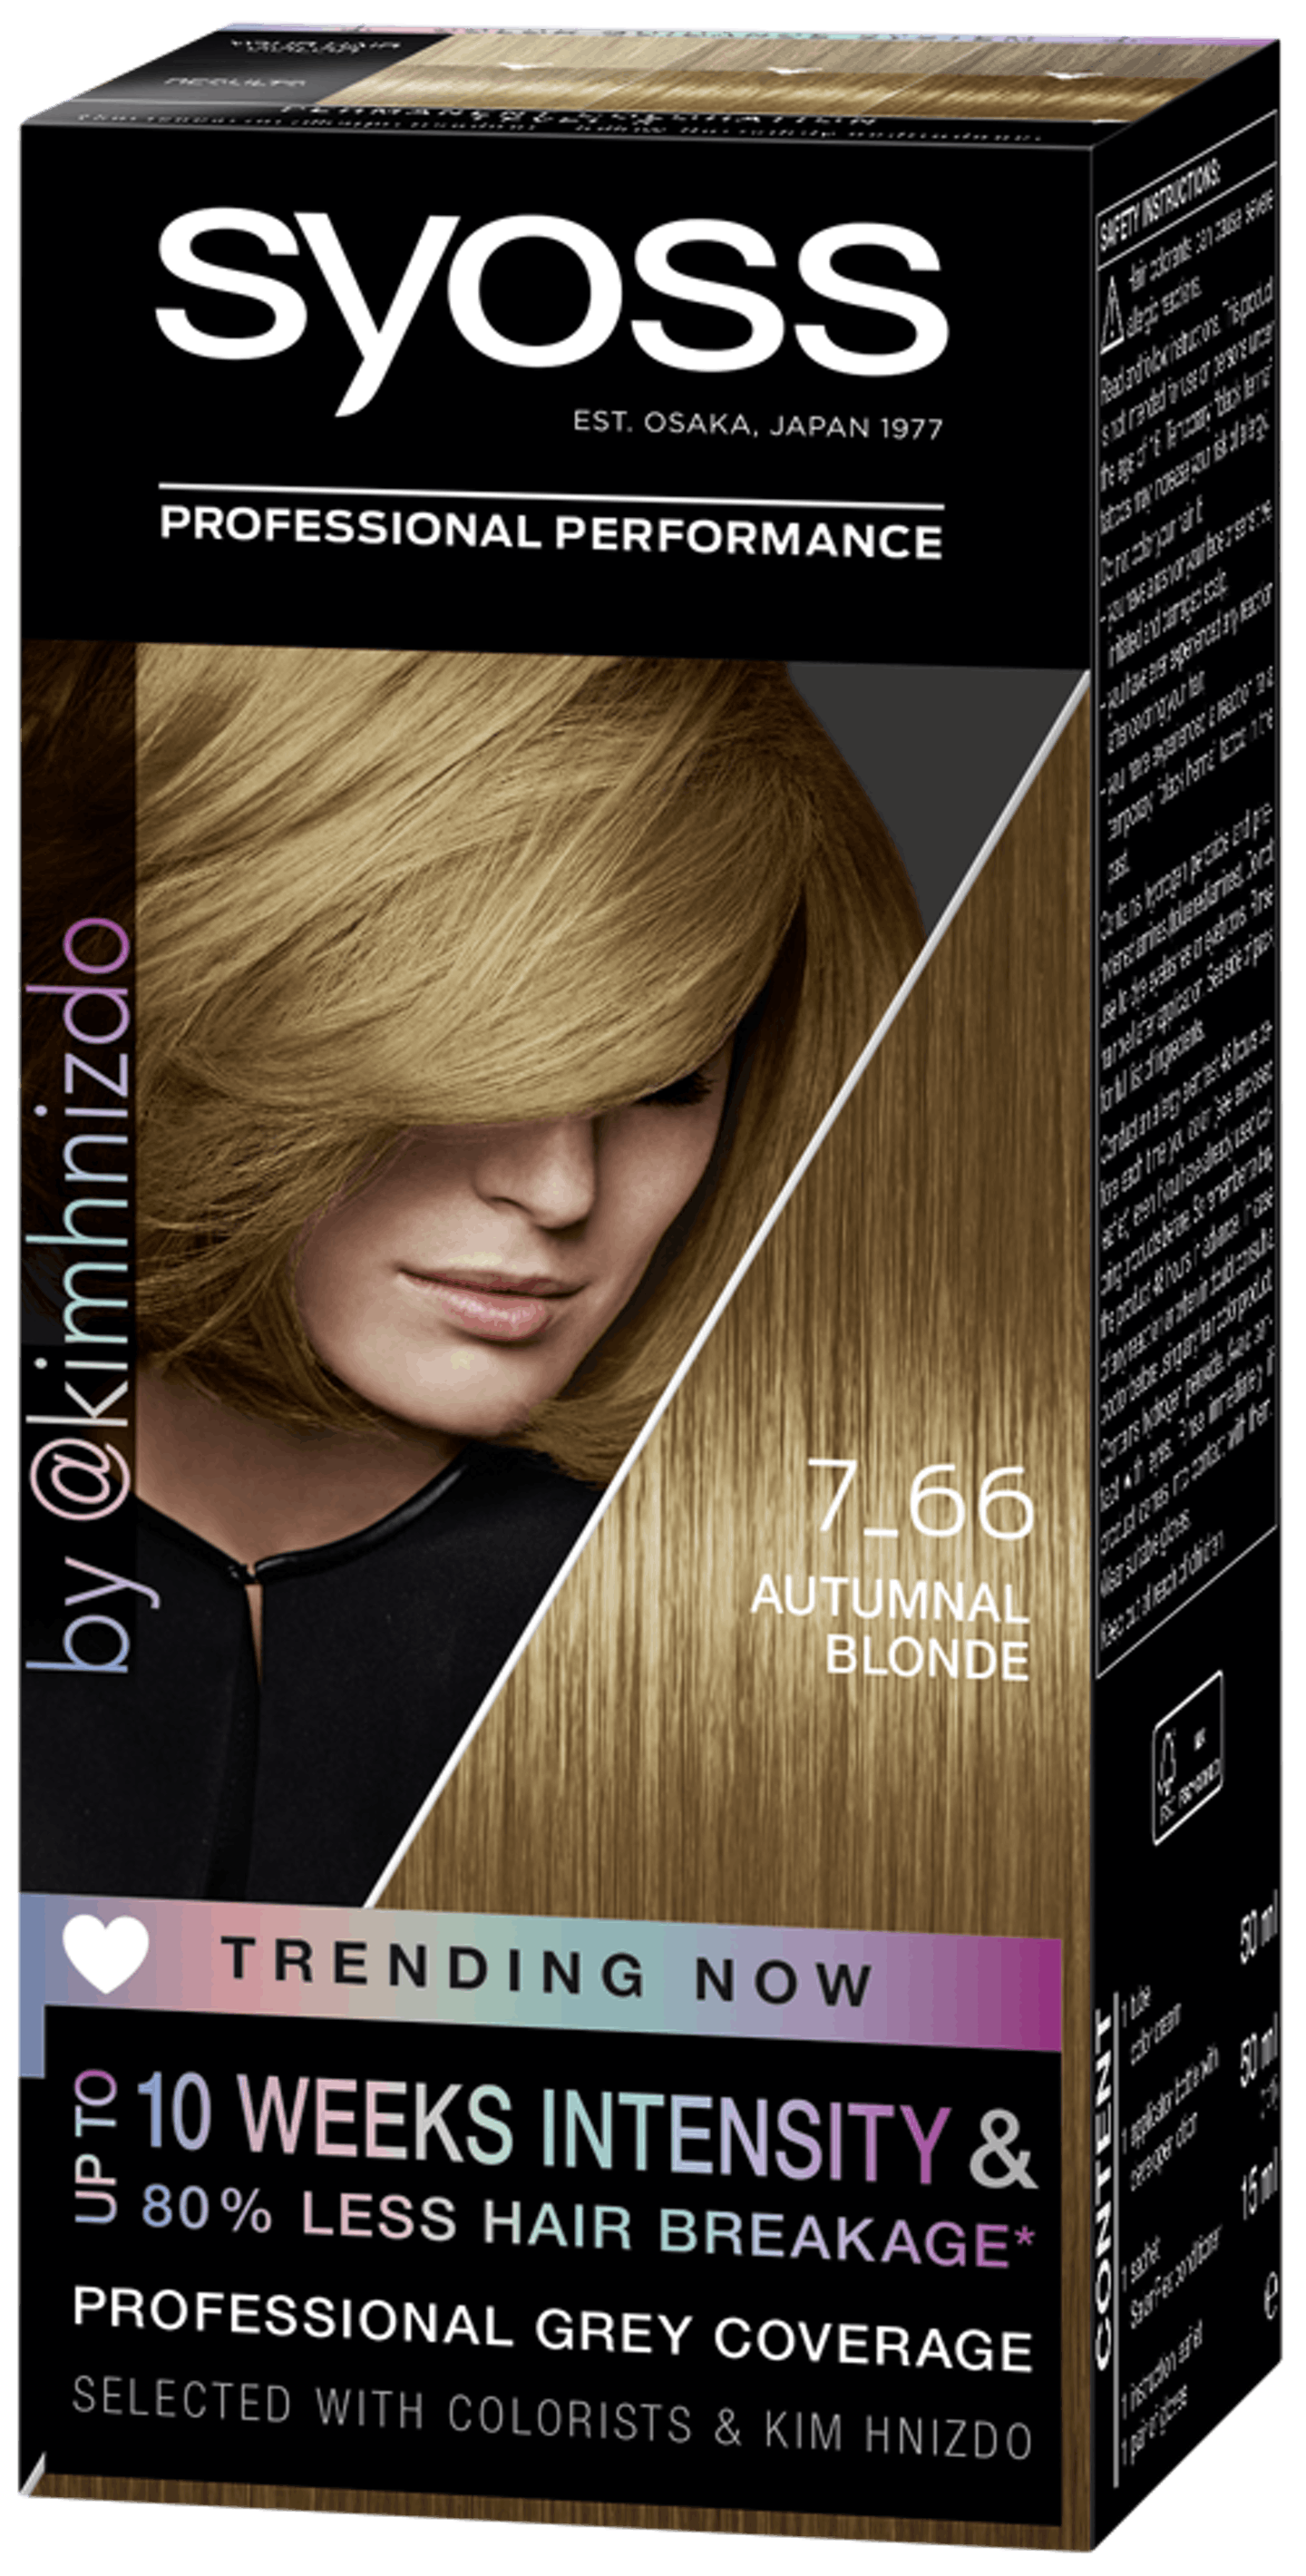 Syoss Permanent Coloration Trending Now 7_66 Autumnal Blond